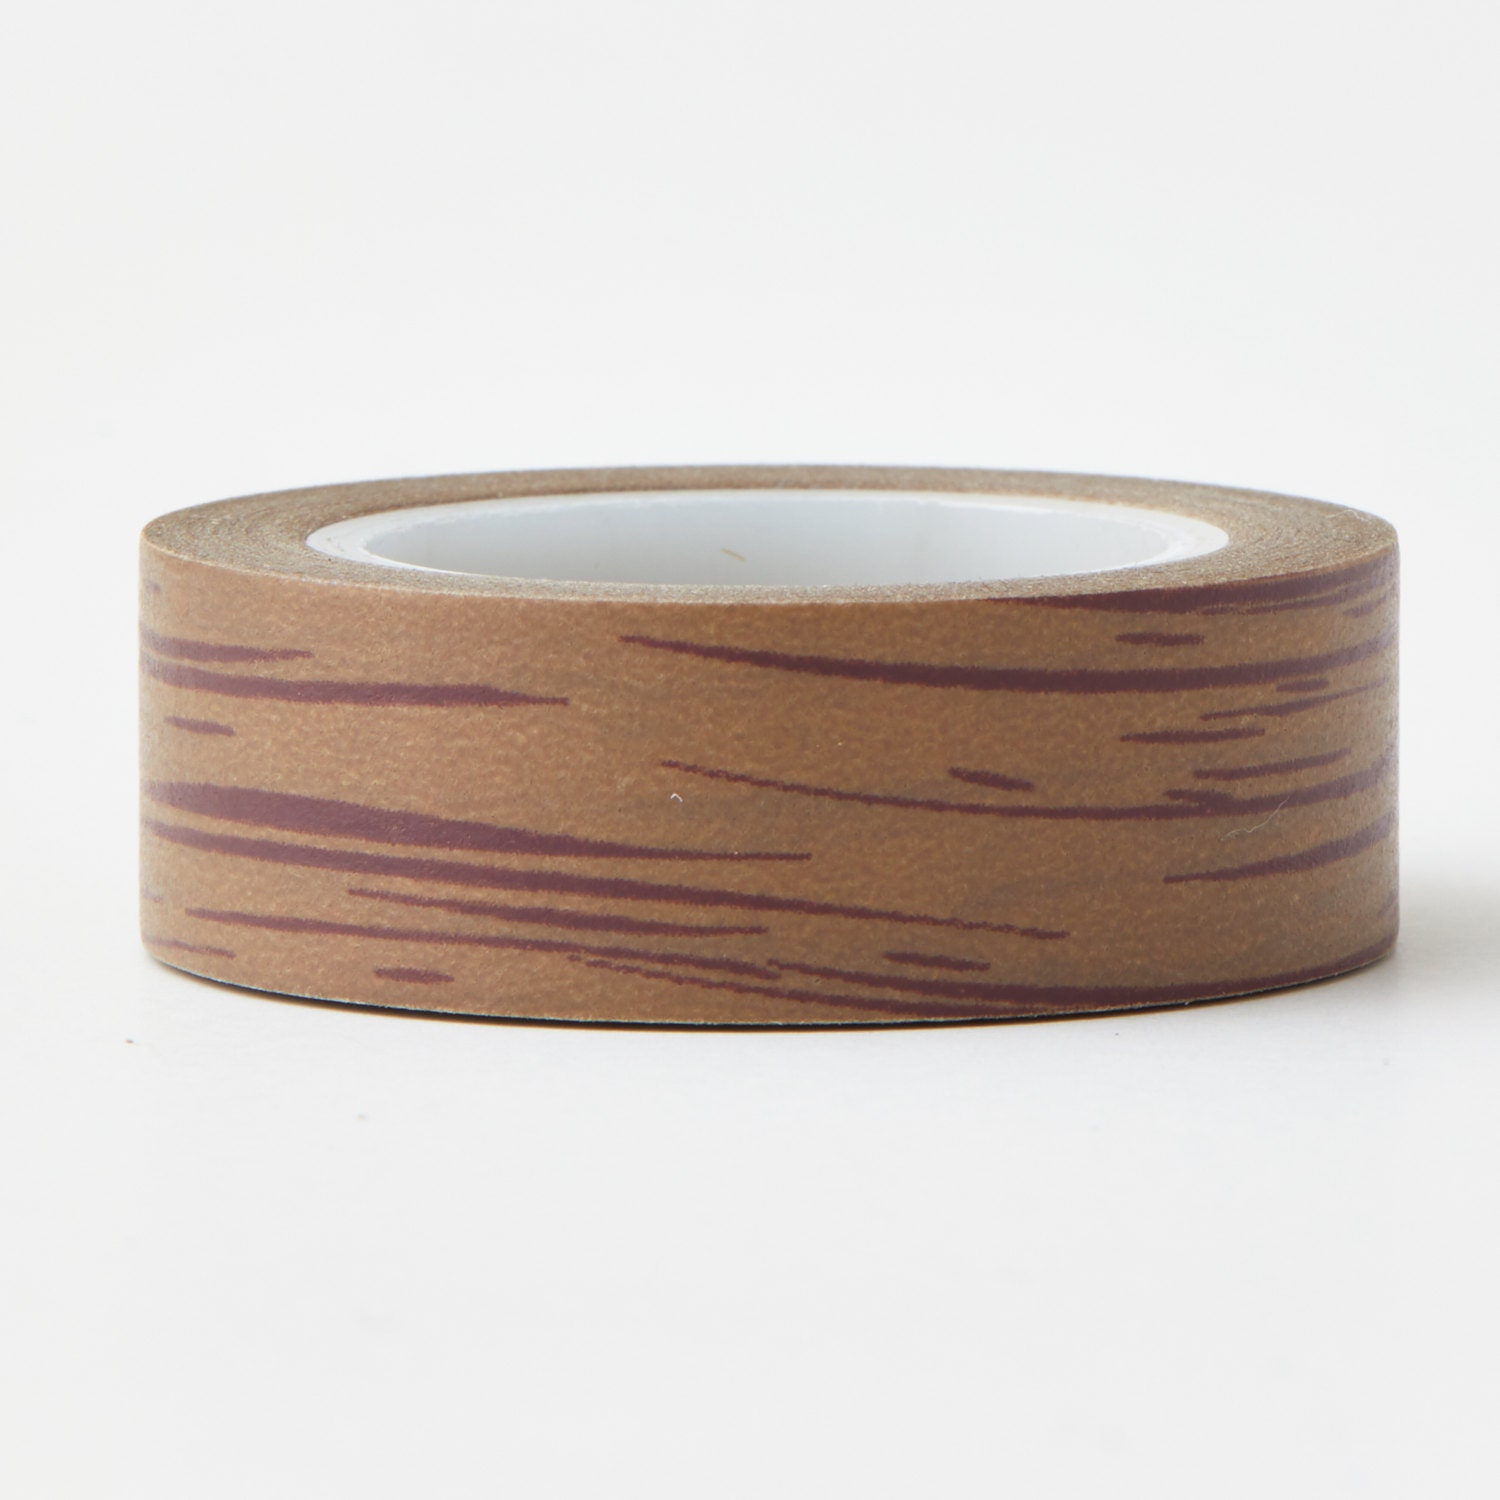 wood washi tape lmt 310 deco tape love my tapes from lovemytapes on etsy studio. Black Bedroom Furniture Sets. Home Design Ideas